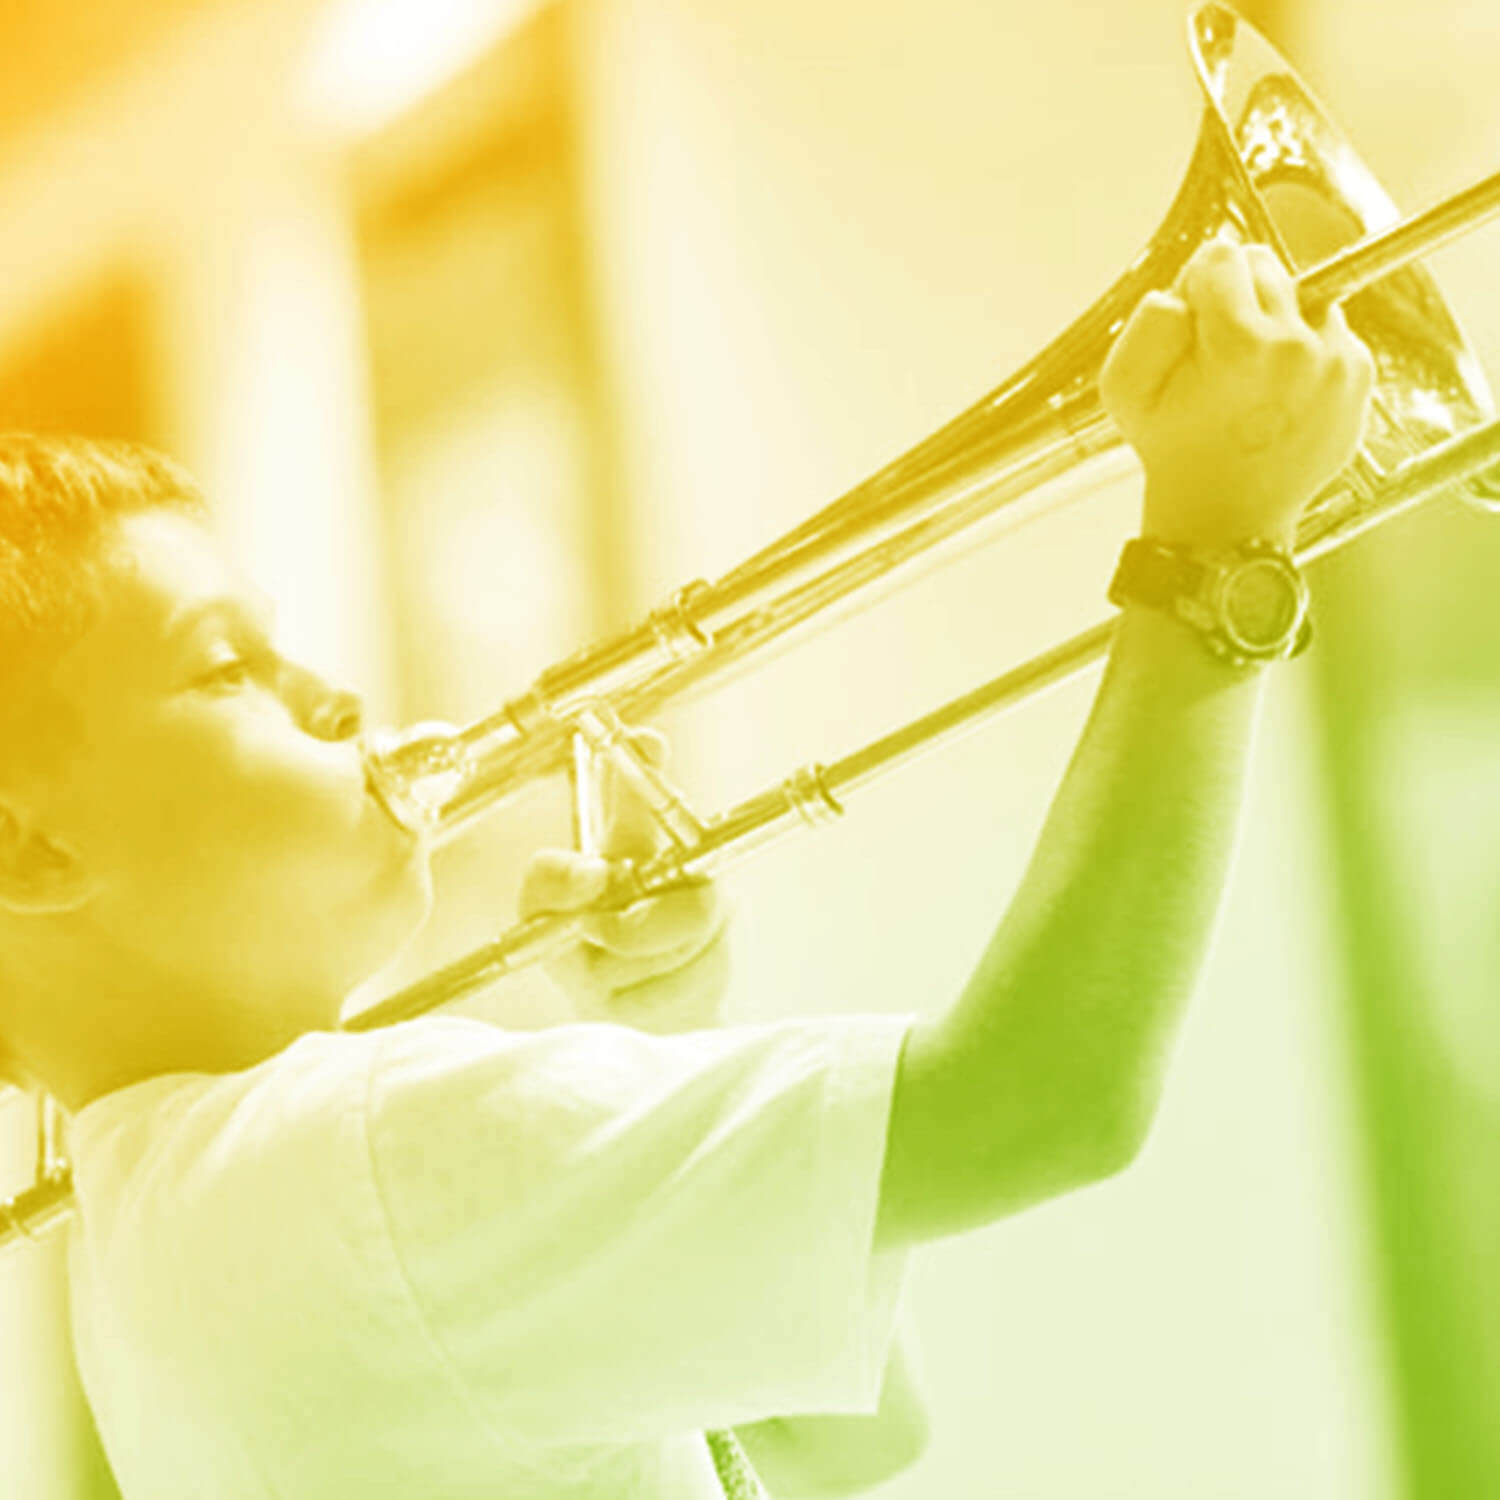 Musary_images_0003_2-trumpet-boy-treated